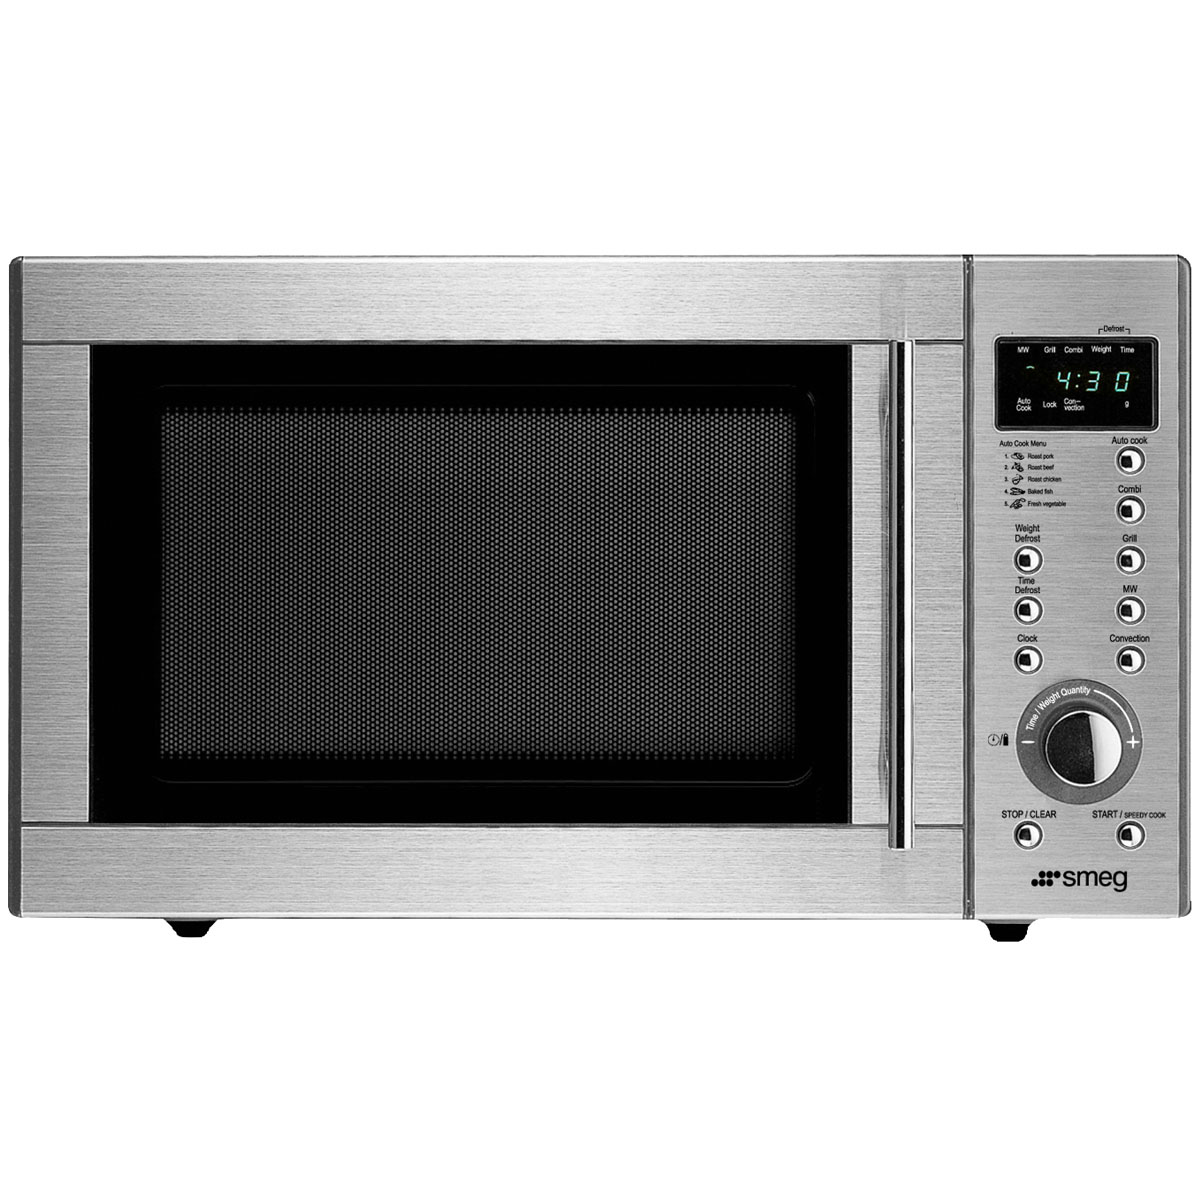 Smeg Convection Microwave SA985-2CX1